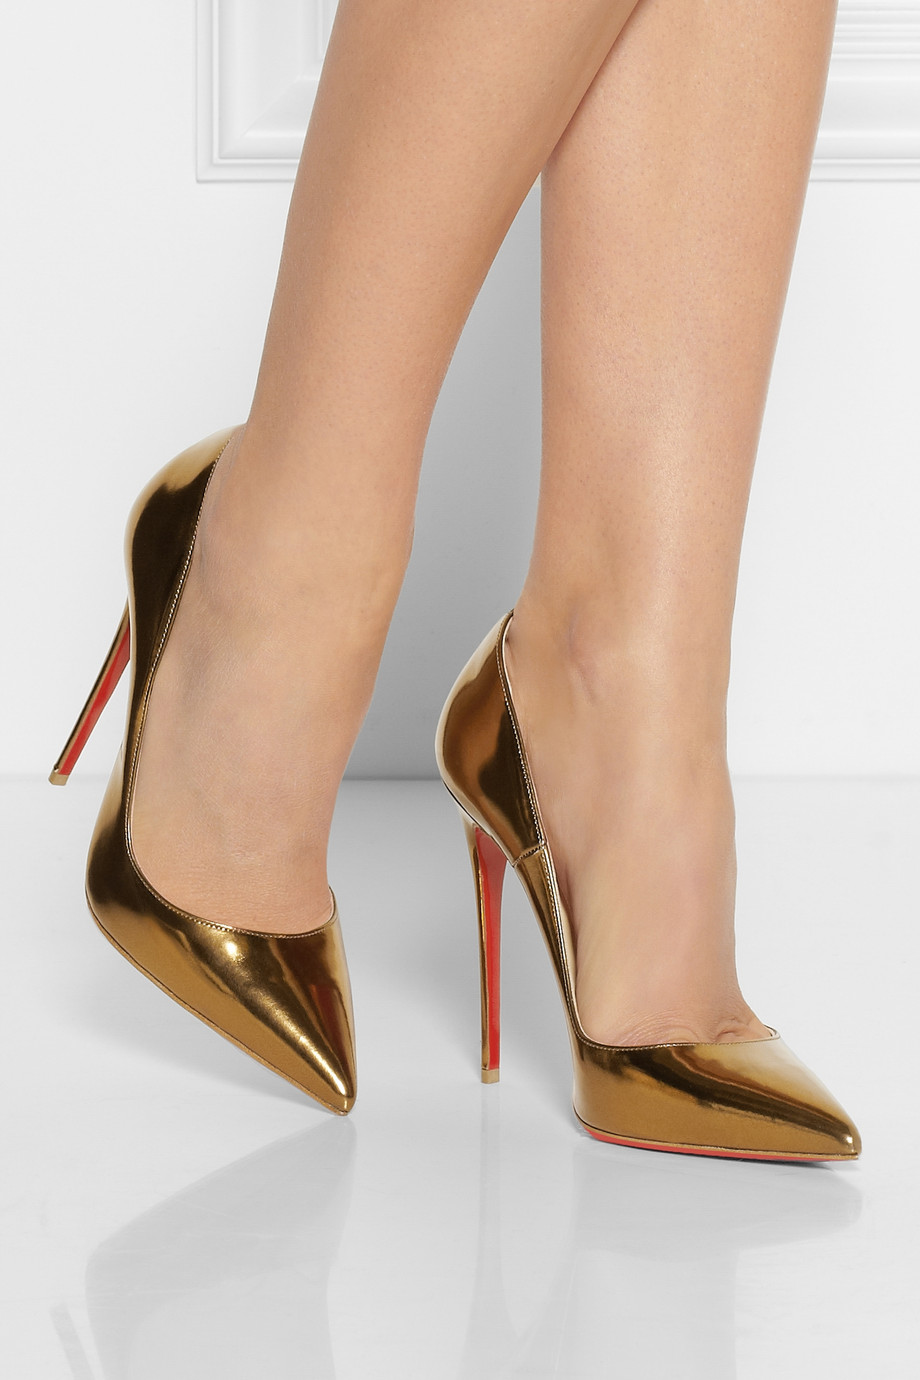 Lyst Christian Louboutin So Kate 120 Patentleather Pumps